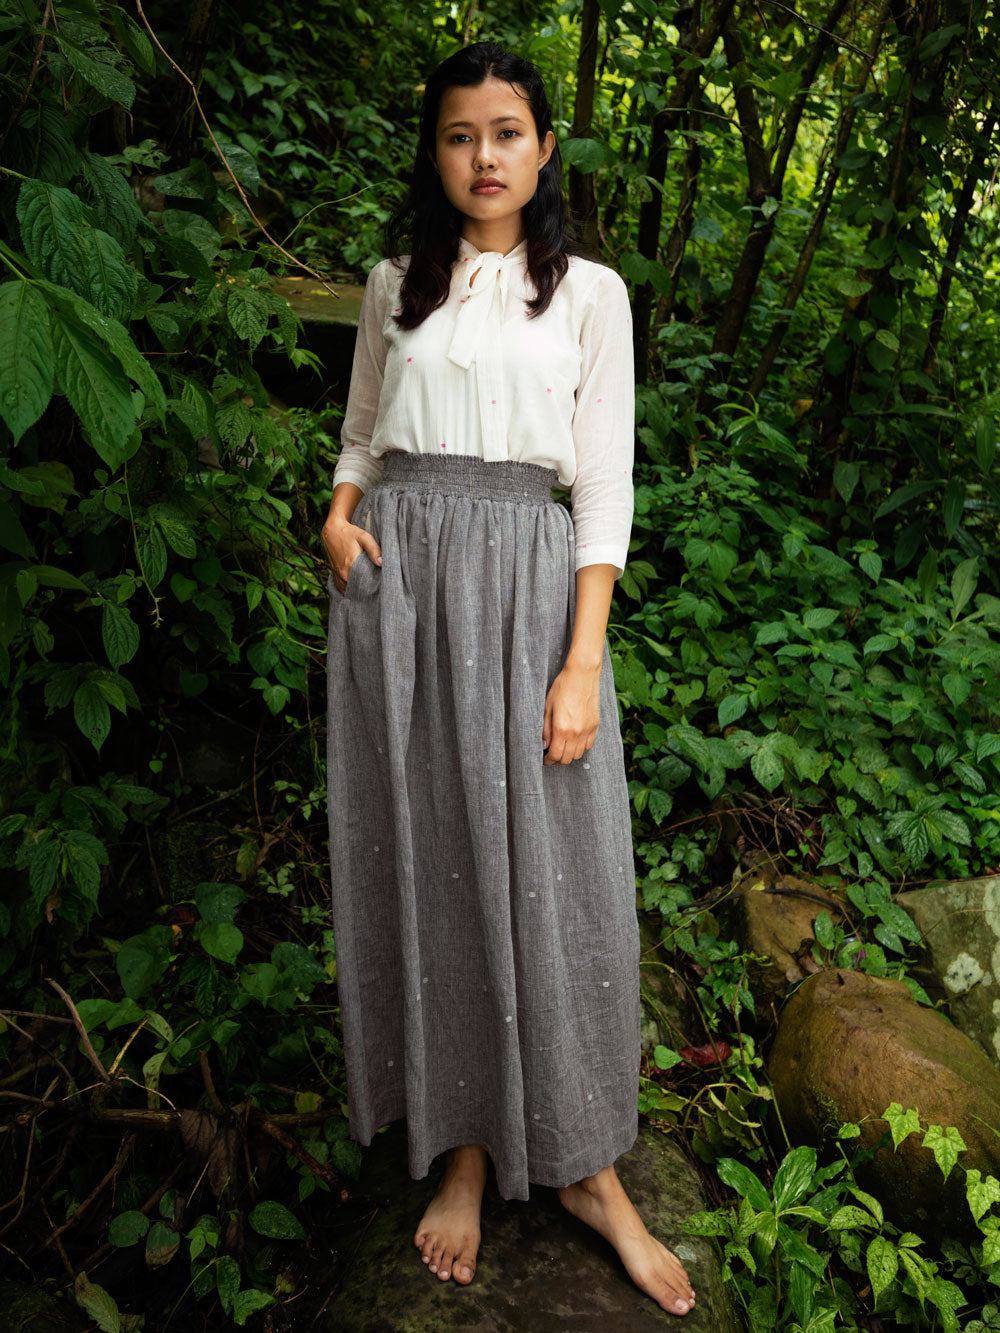 Handwoven Elastane cotton skirt, designed by Khumanthem Atelier